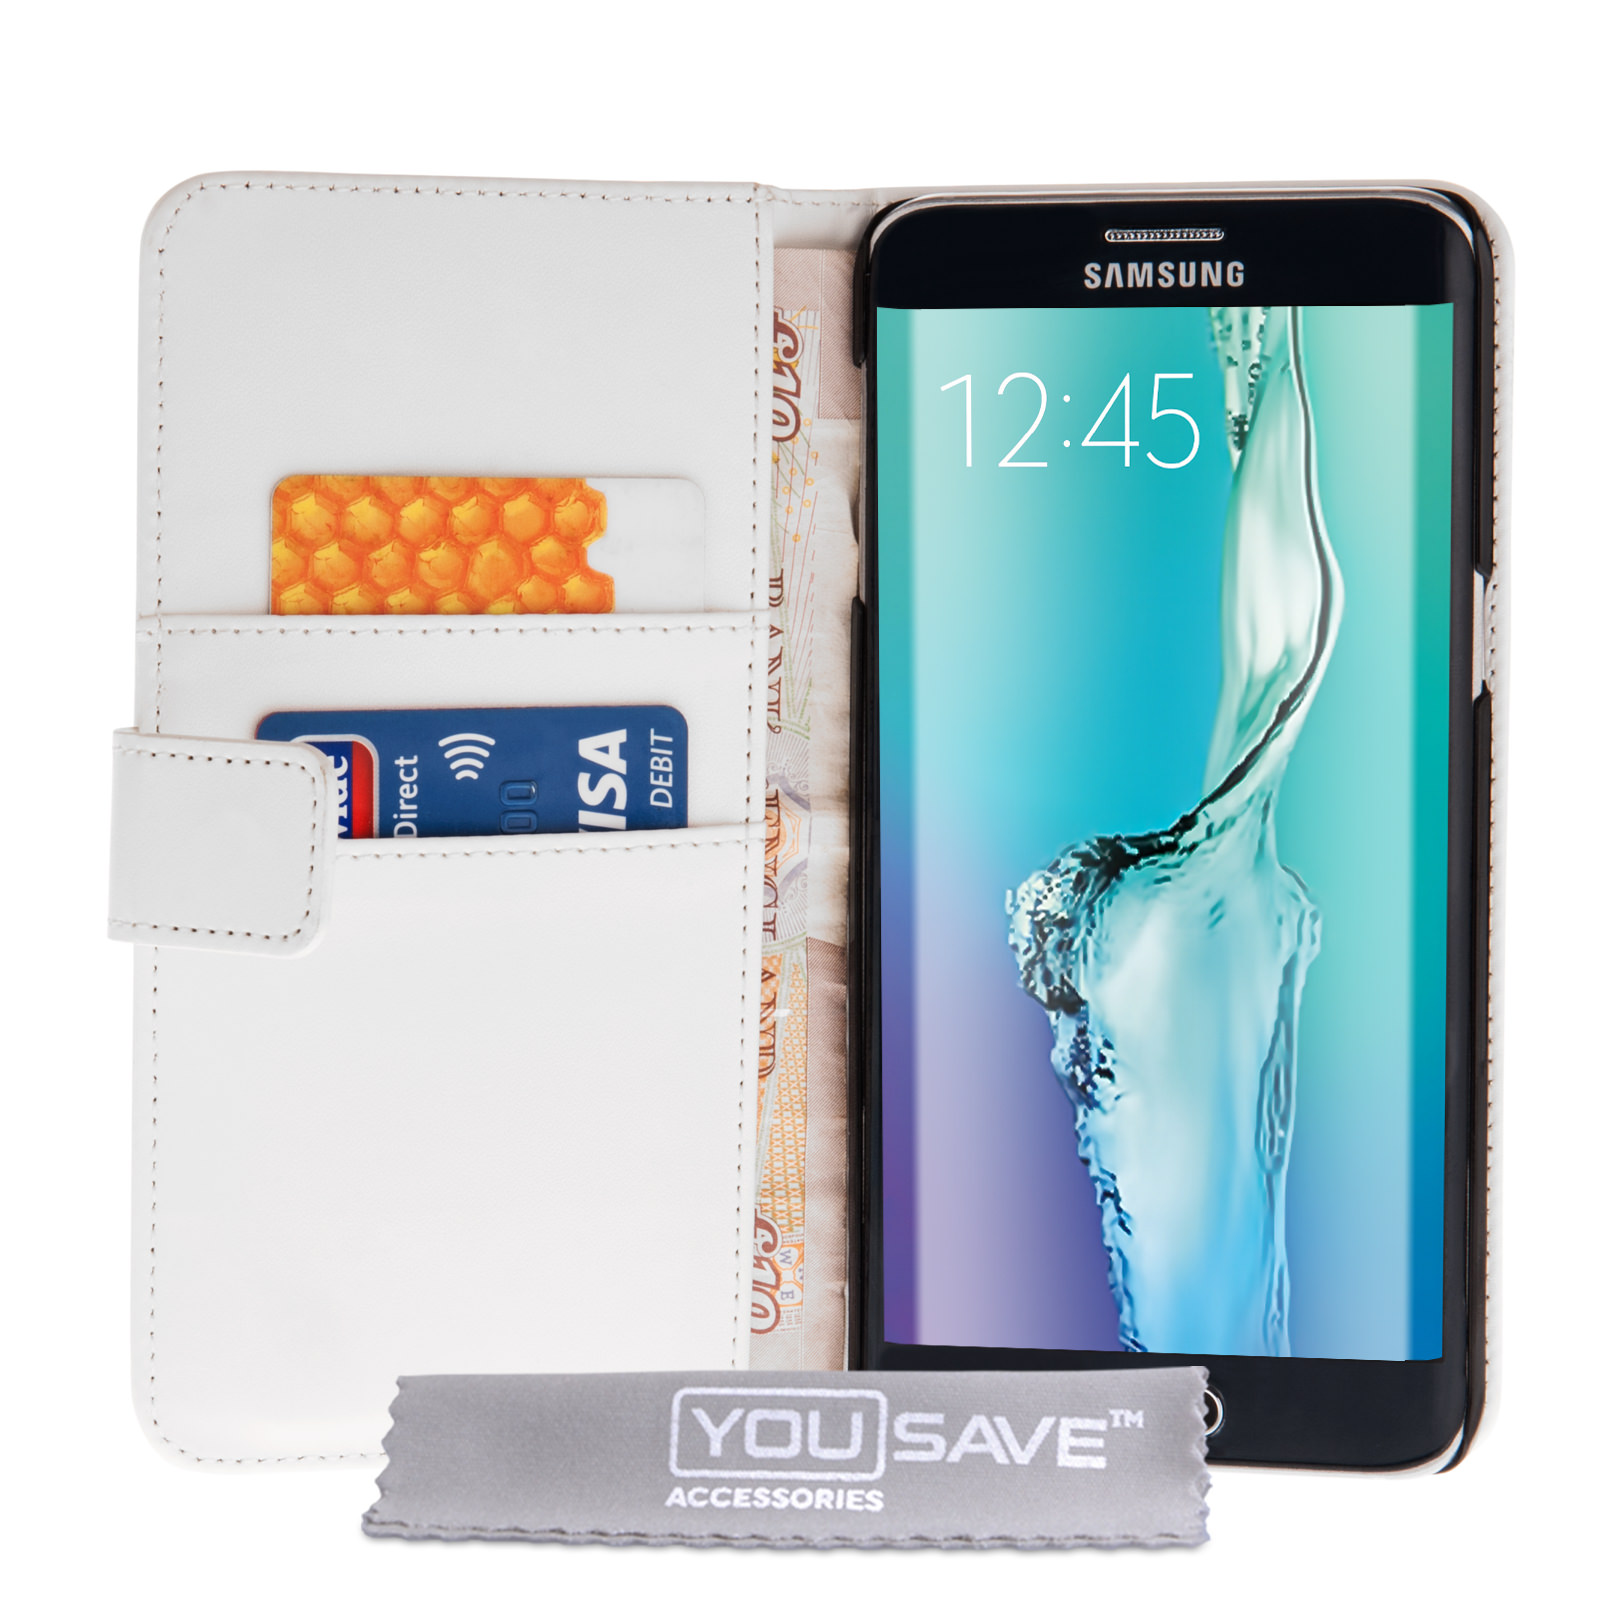 Yousave Accessories Samsung Galaxy S6 Edge Plus PU Leather Wallet Case -White